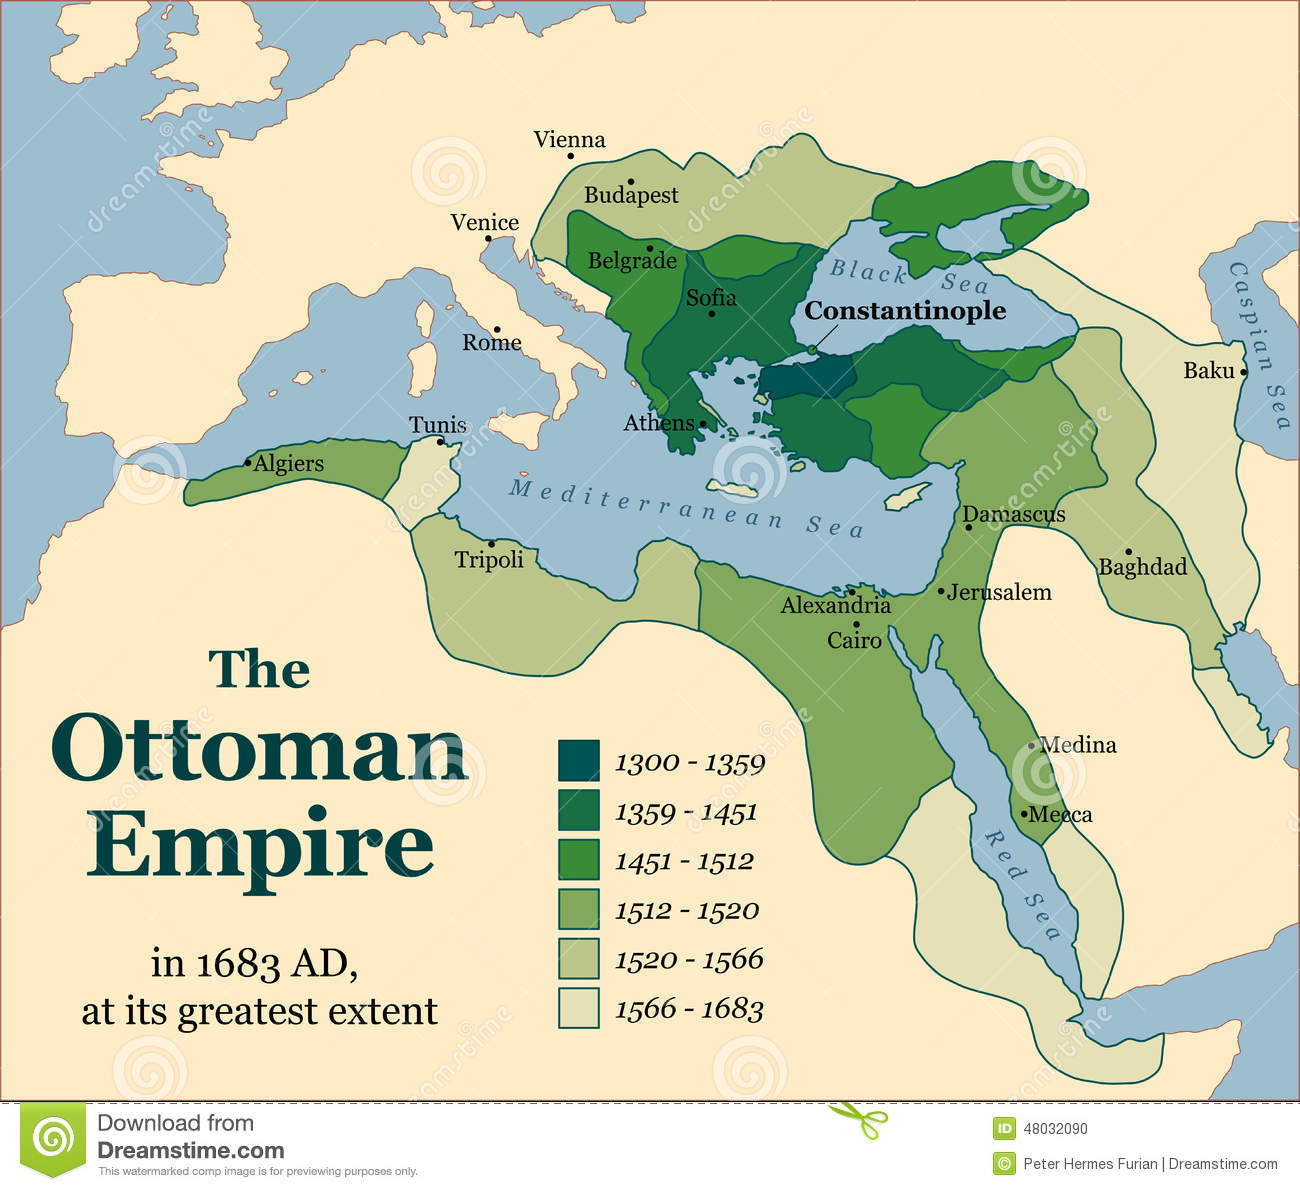 The Ottoman Empire used to be in the place of what is known as the Middle  East. The downfall of the Ottoman Empire lead to the Middle East.